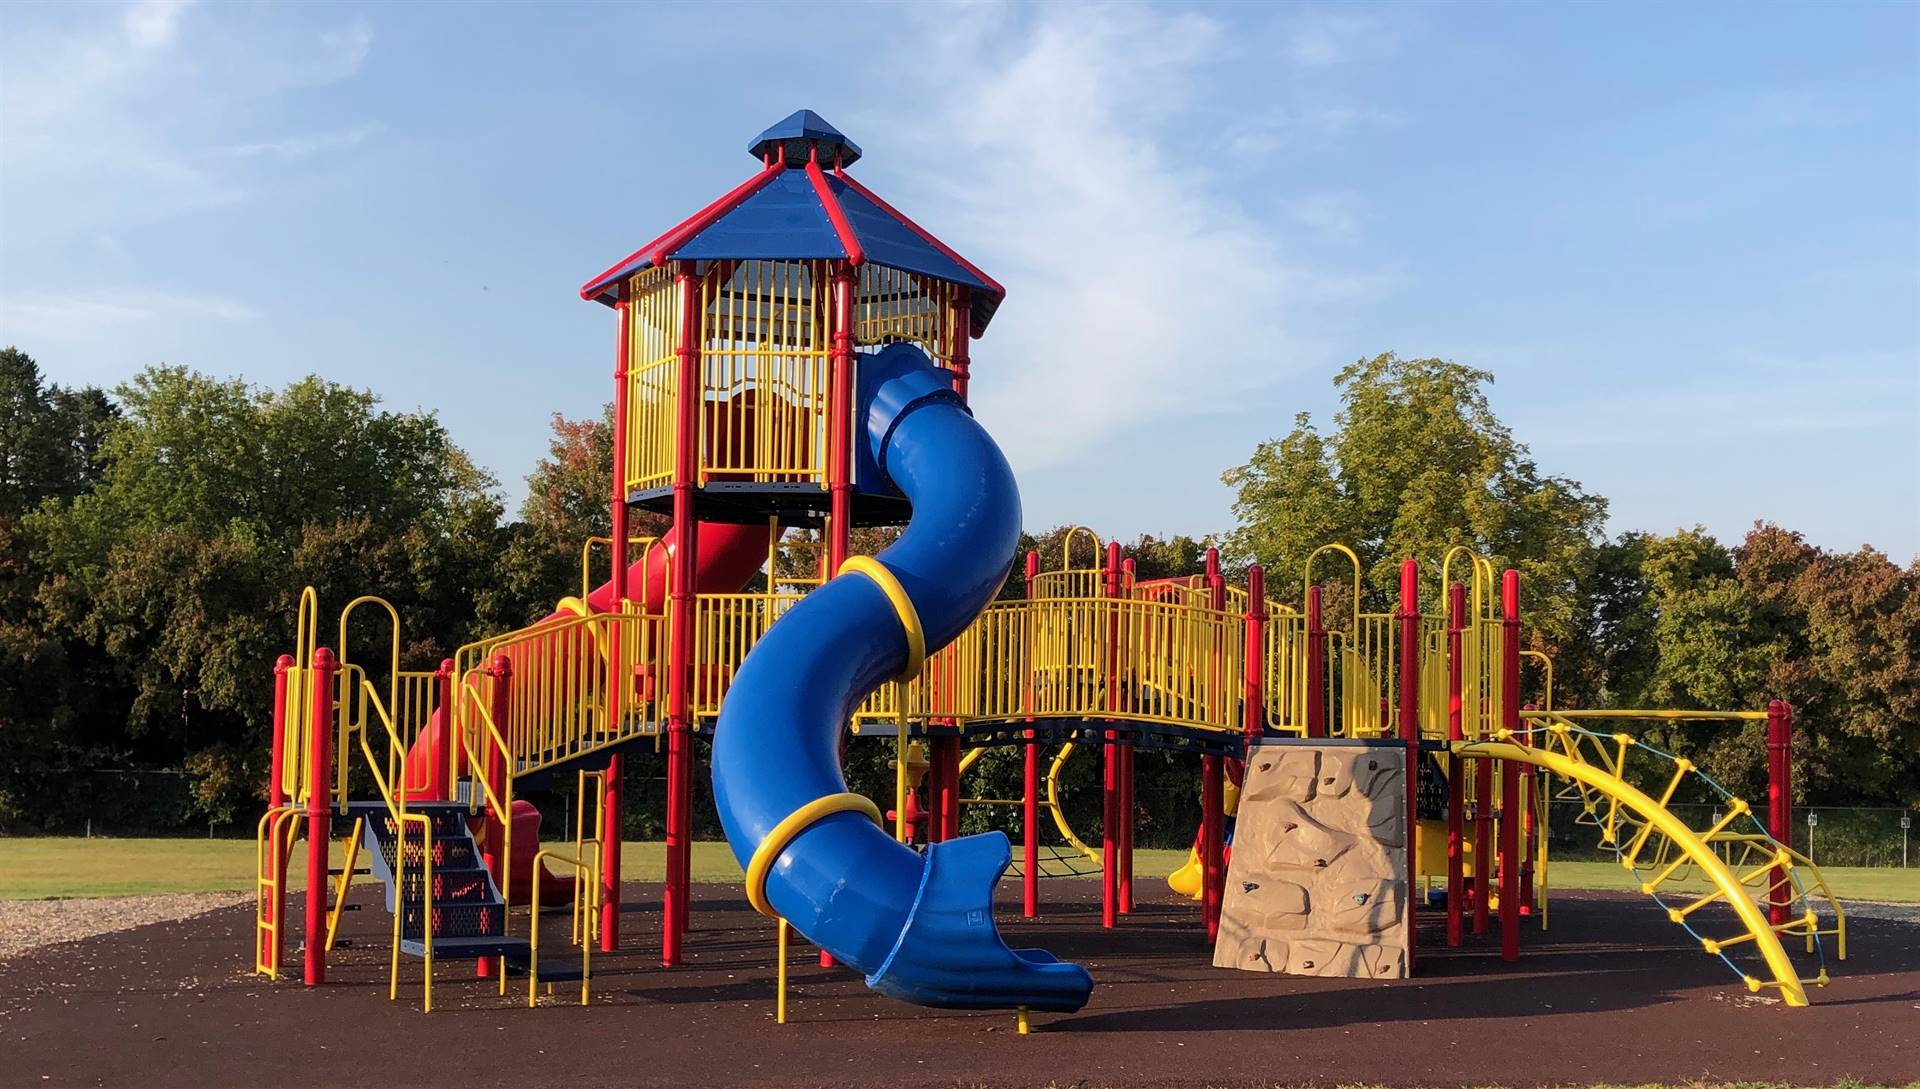 photo of playground equipment